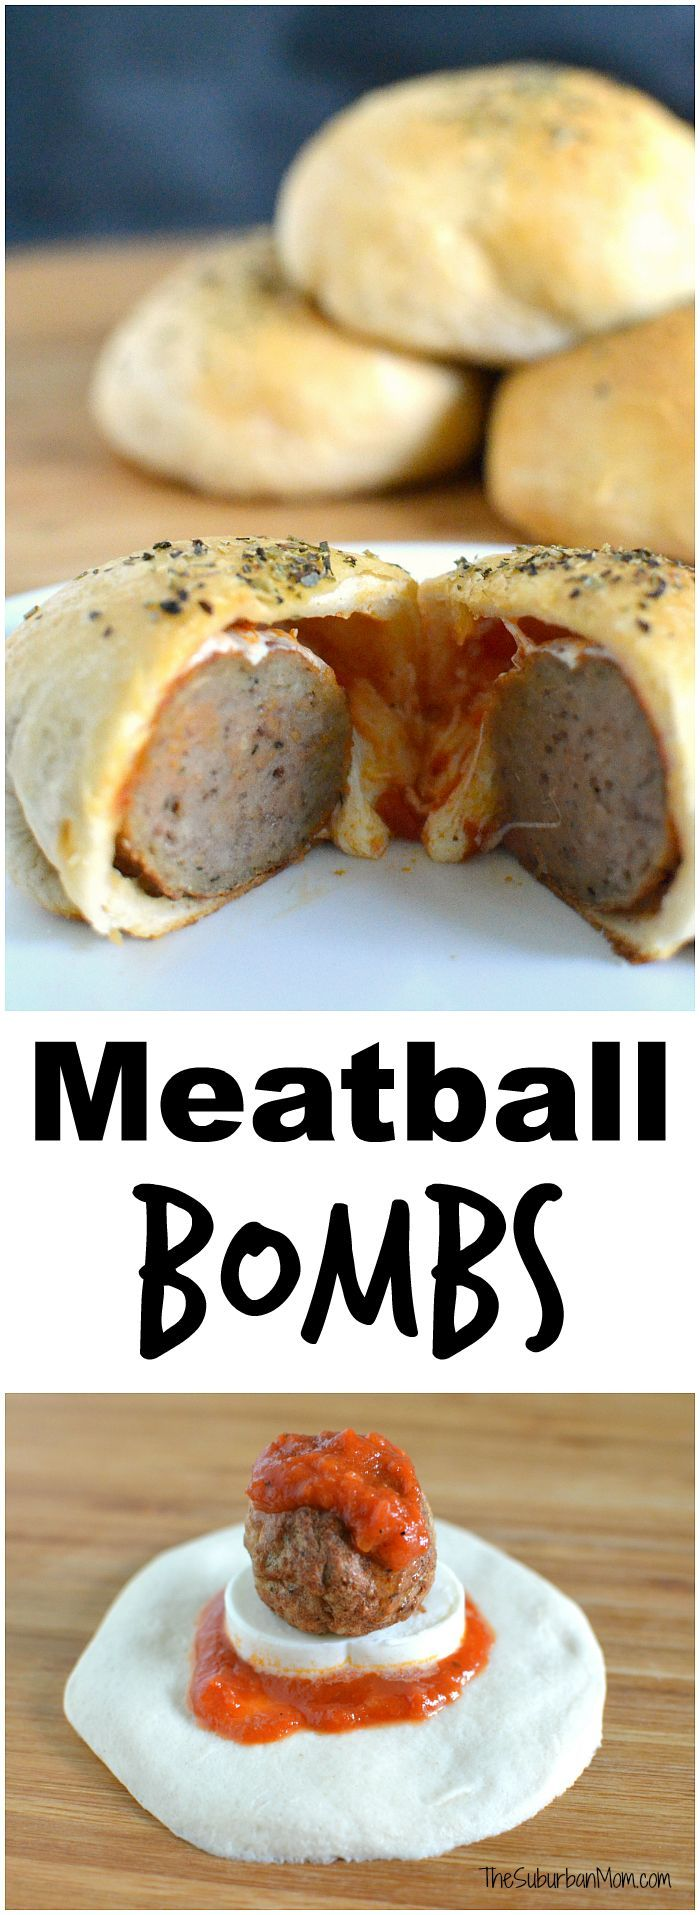 Make dinnertime fun by stuffing dinner inside a biscuit. My kids love meatballs, and meatball bombs are our new favorite way to eat meatballs.